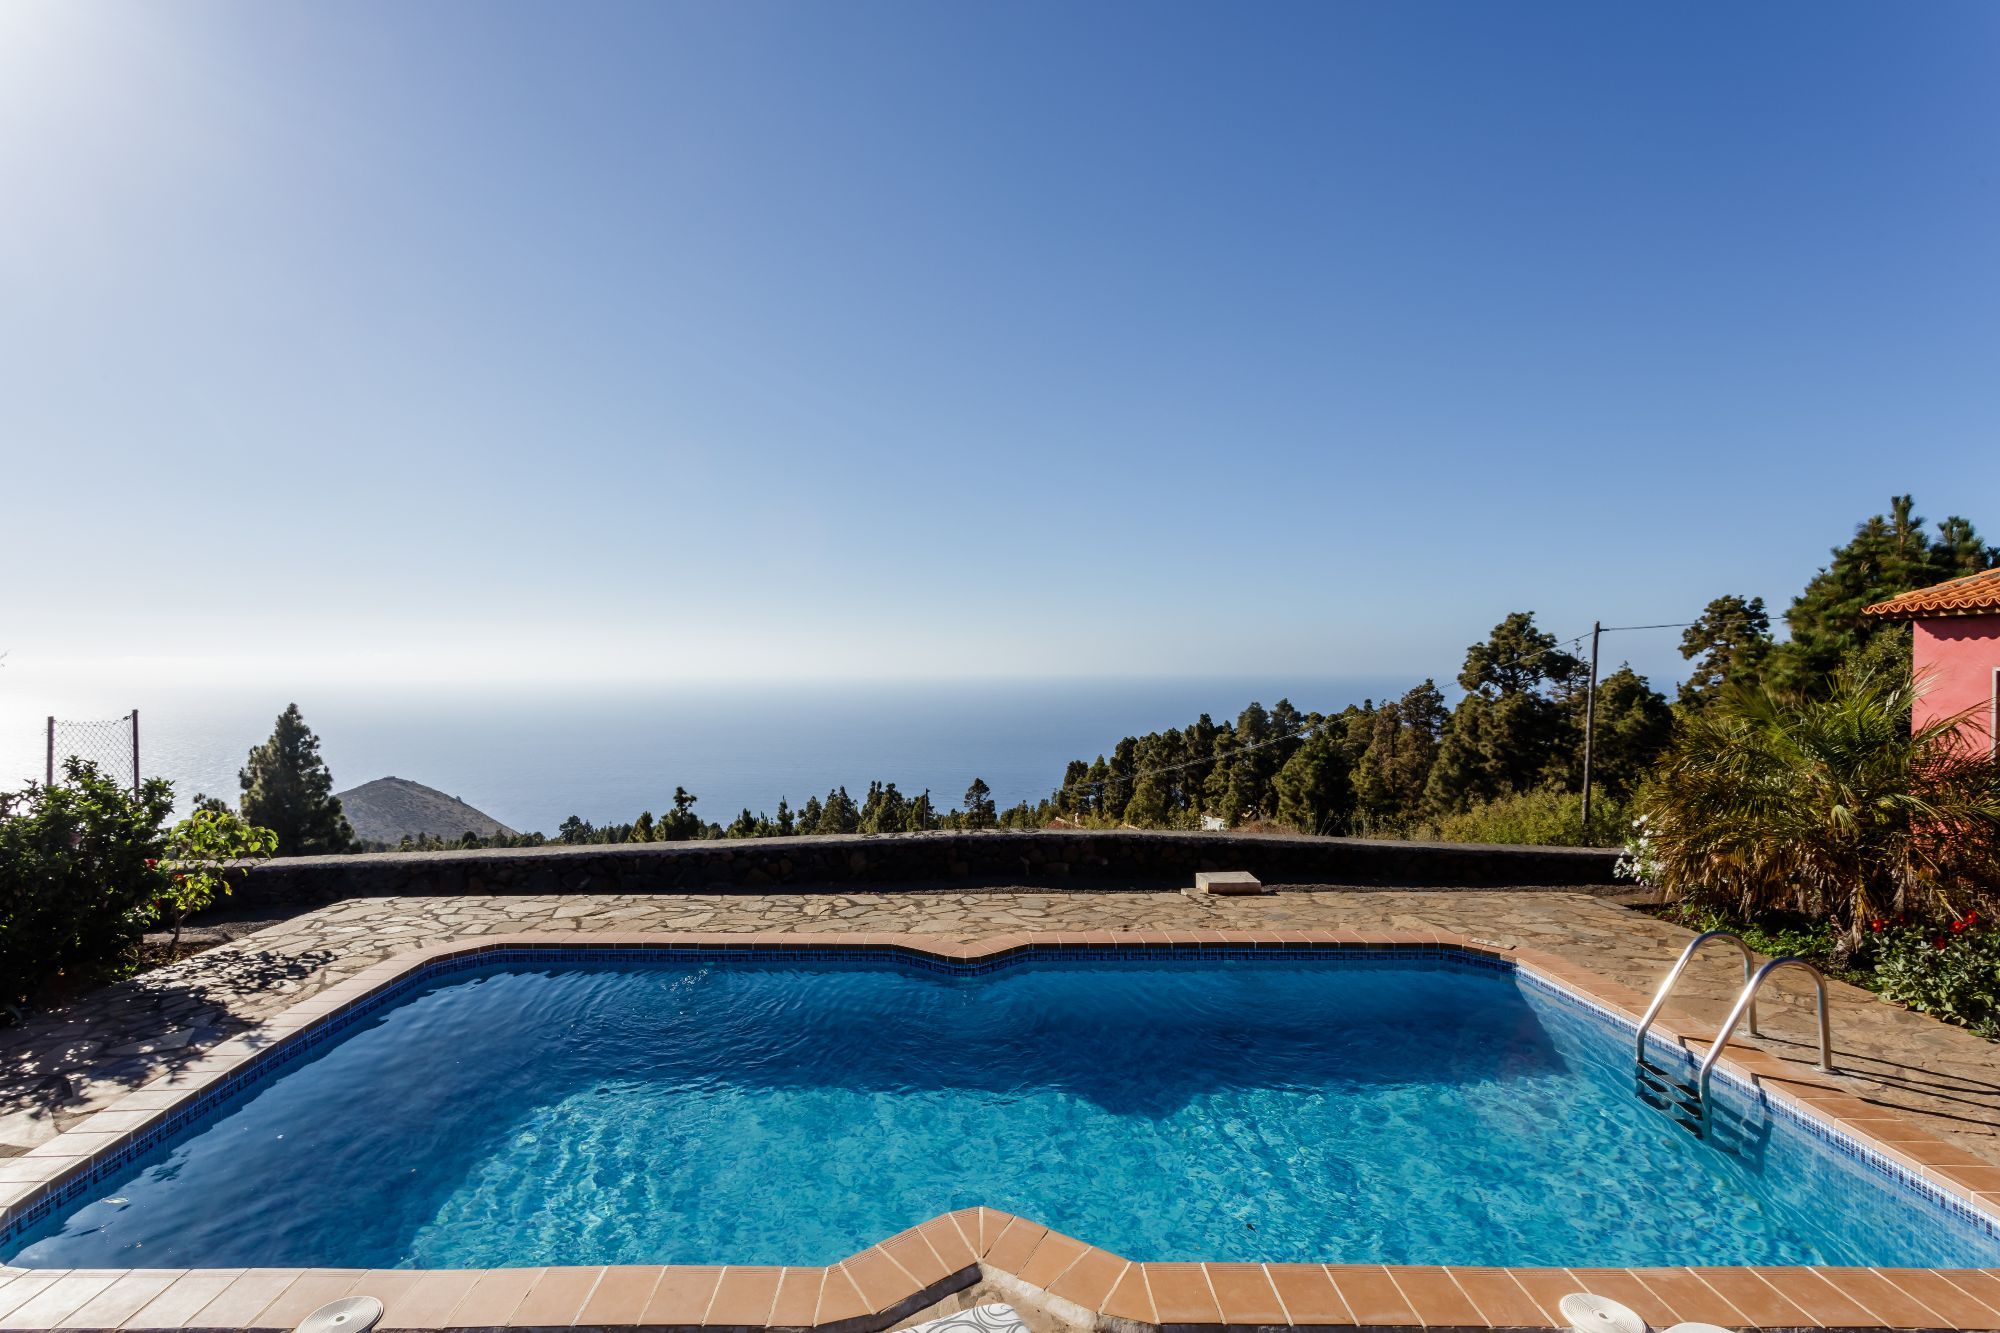 casa verada with private pool, puntagorda, la palma